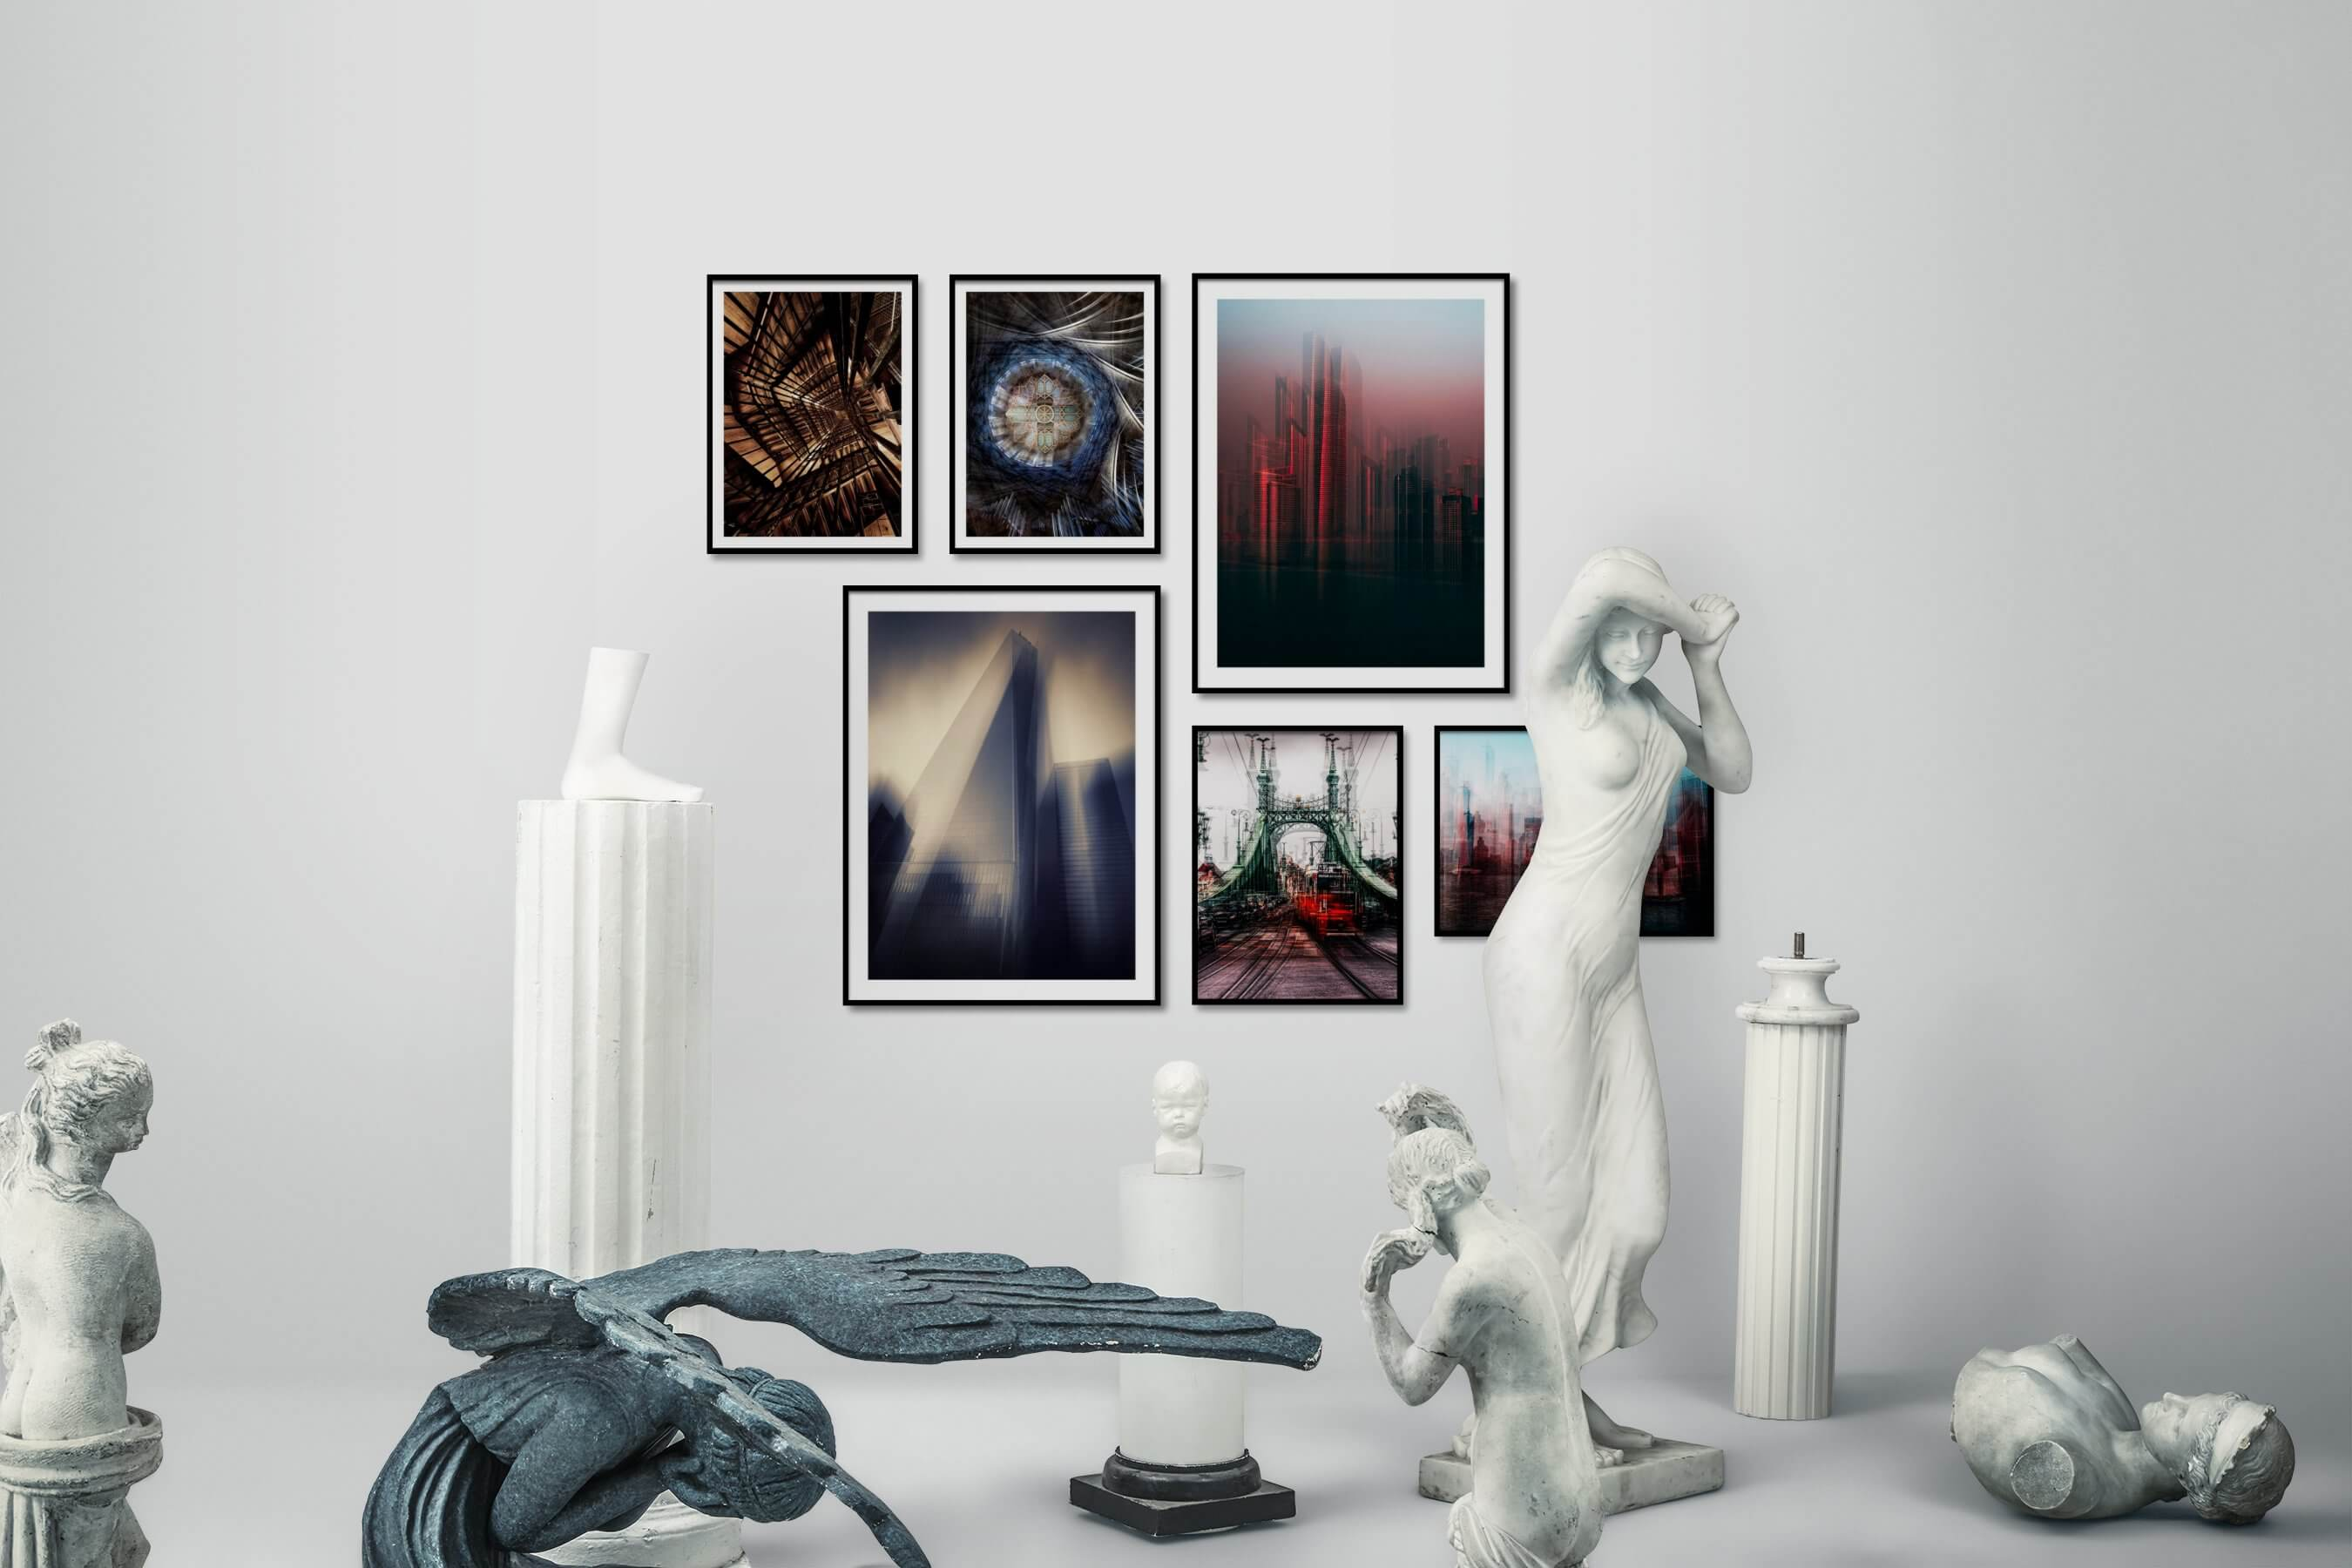 Gallery wall idea with six framed pictures arranged on a wall depicting For the Maximalist, For the Moderate, City Life, and Americana